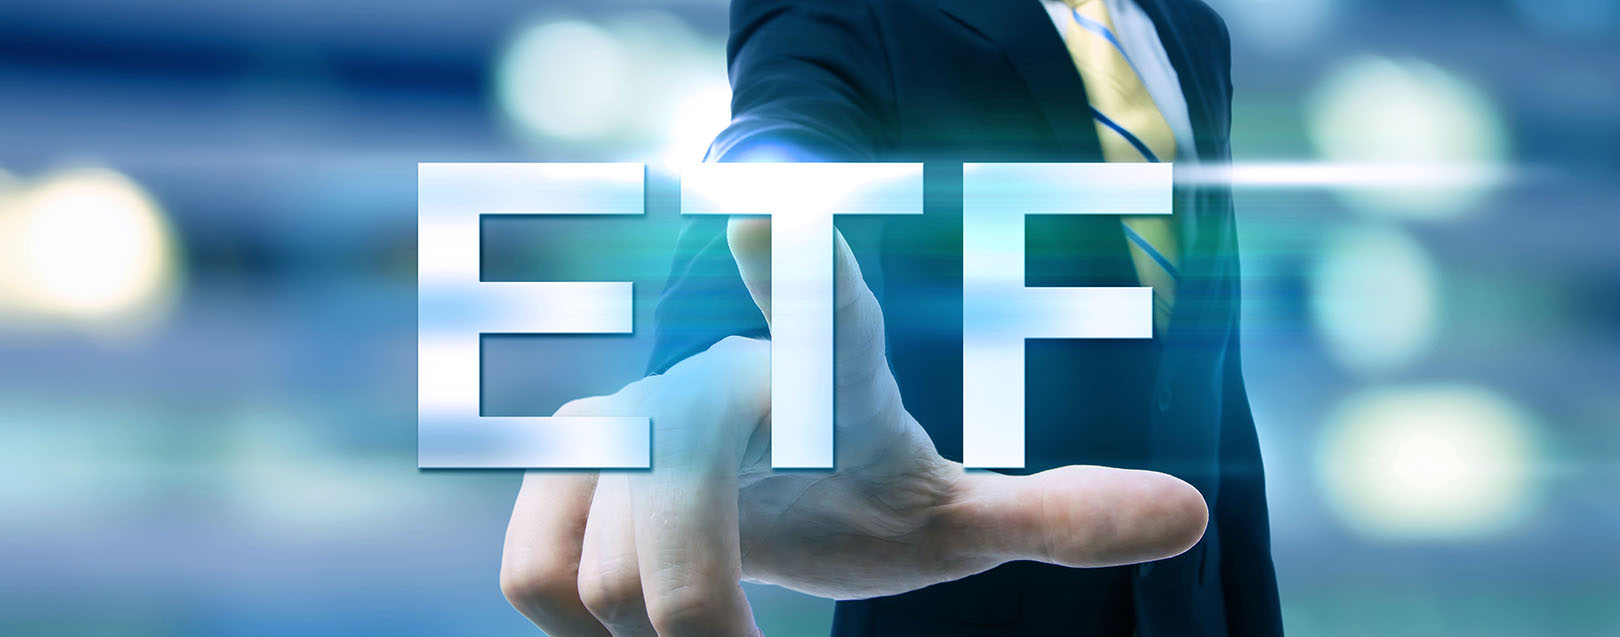 EPFO has invested Rs 9,723 cr in ETF's till Oct 31